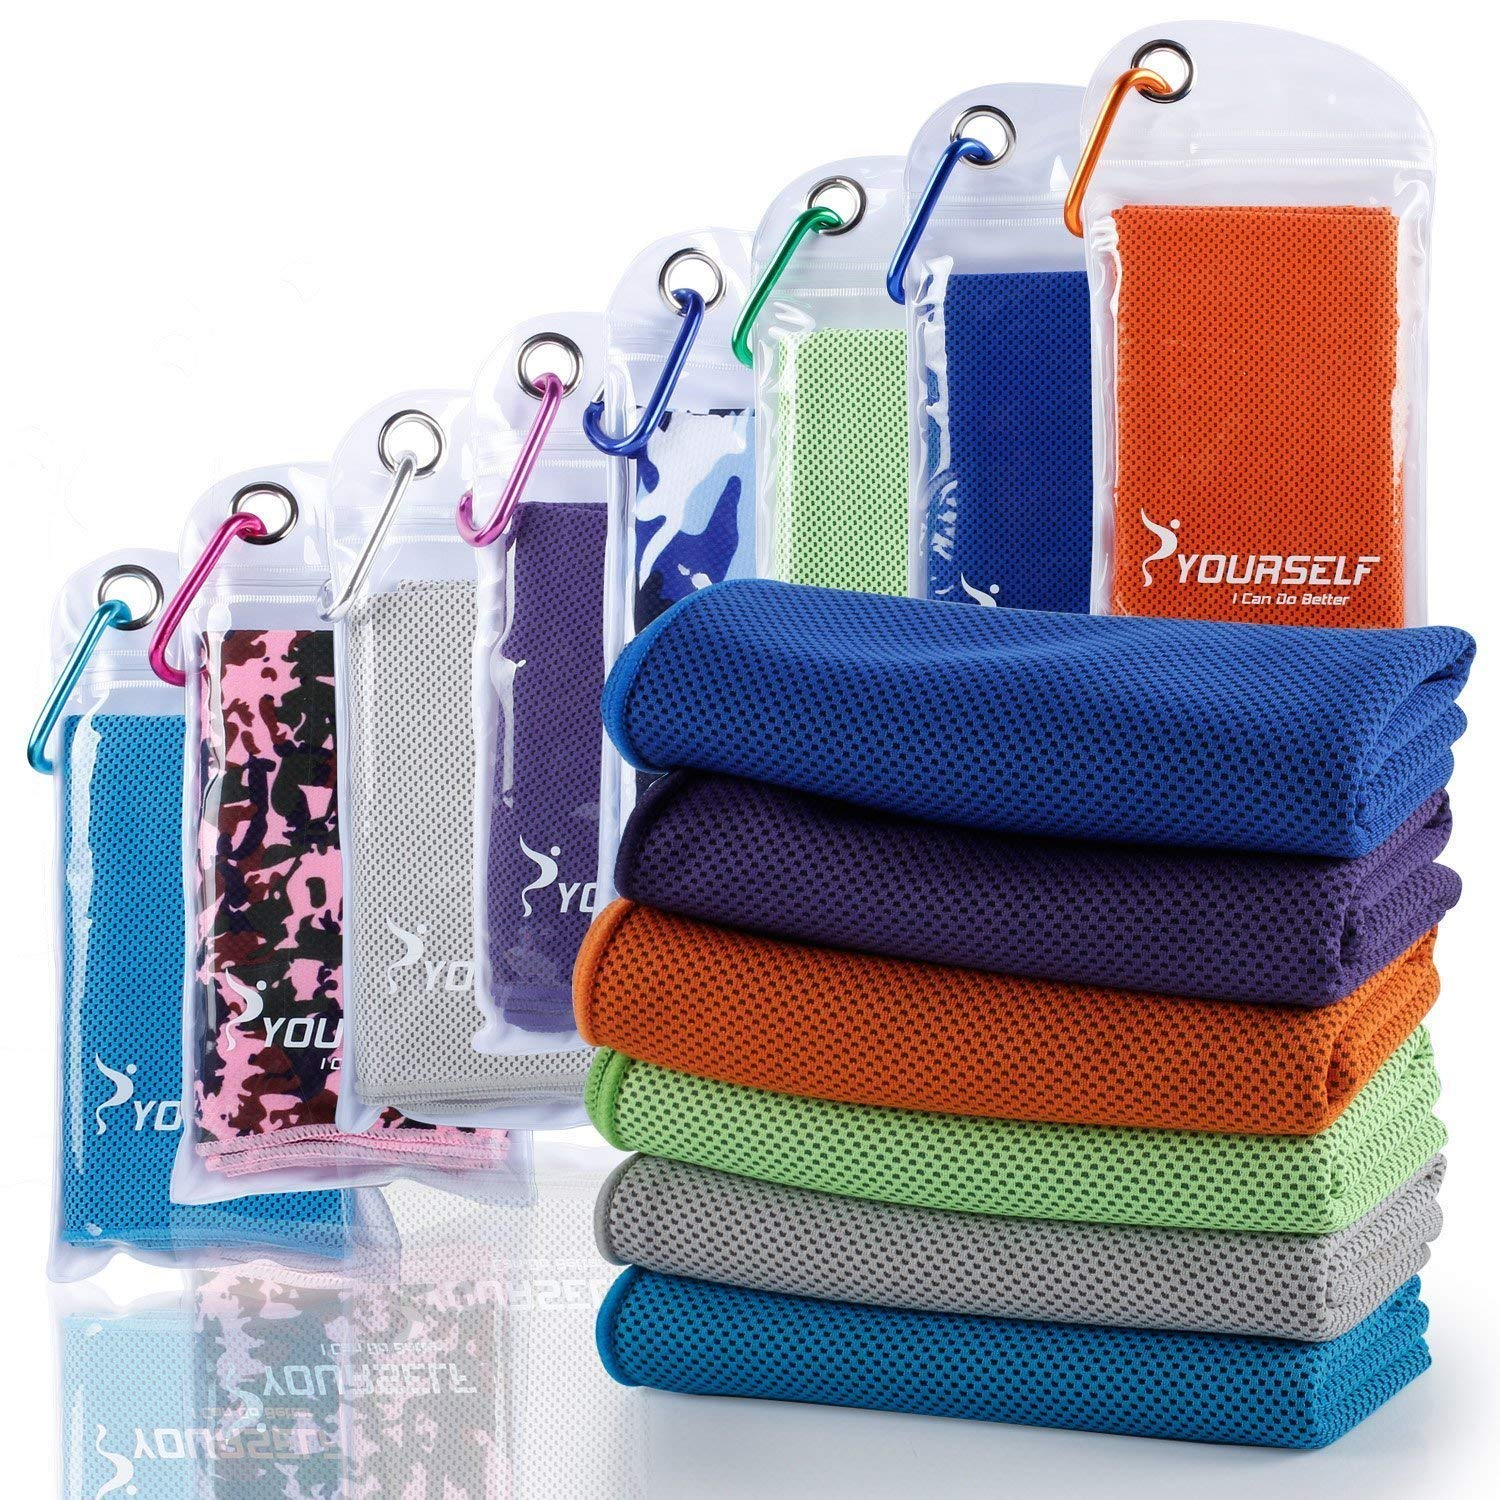 Syourself Cooling Towel for Instant Relief